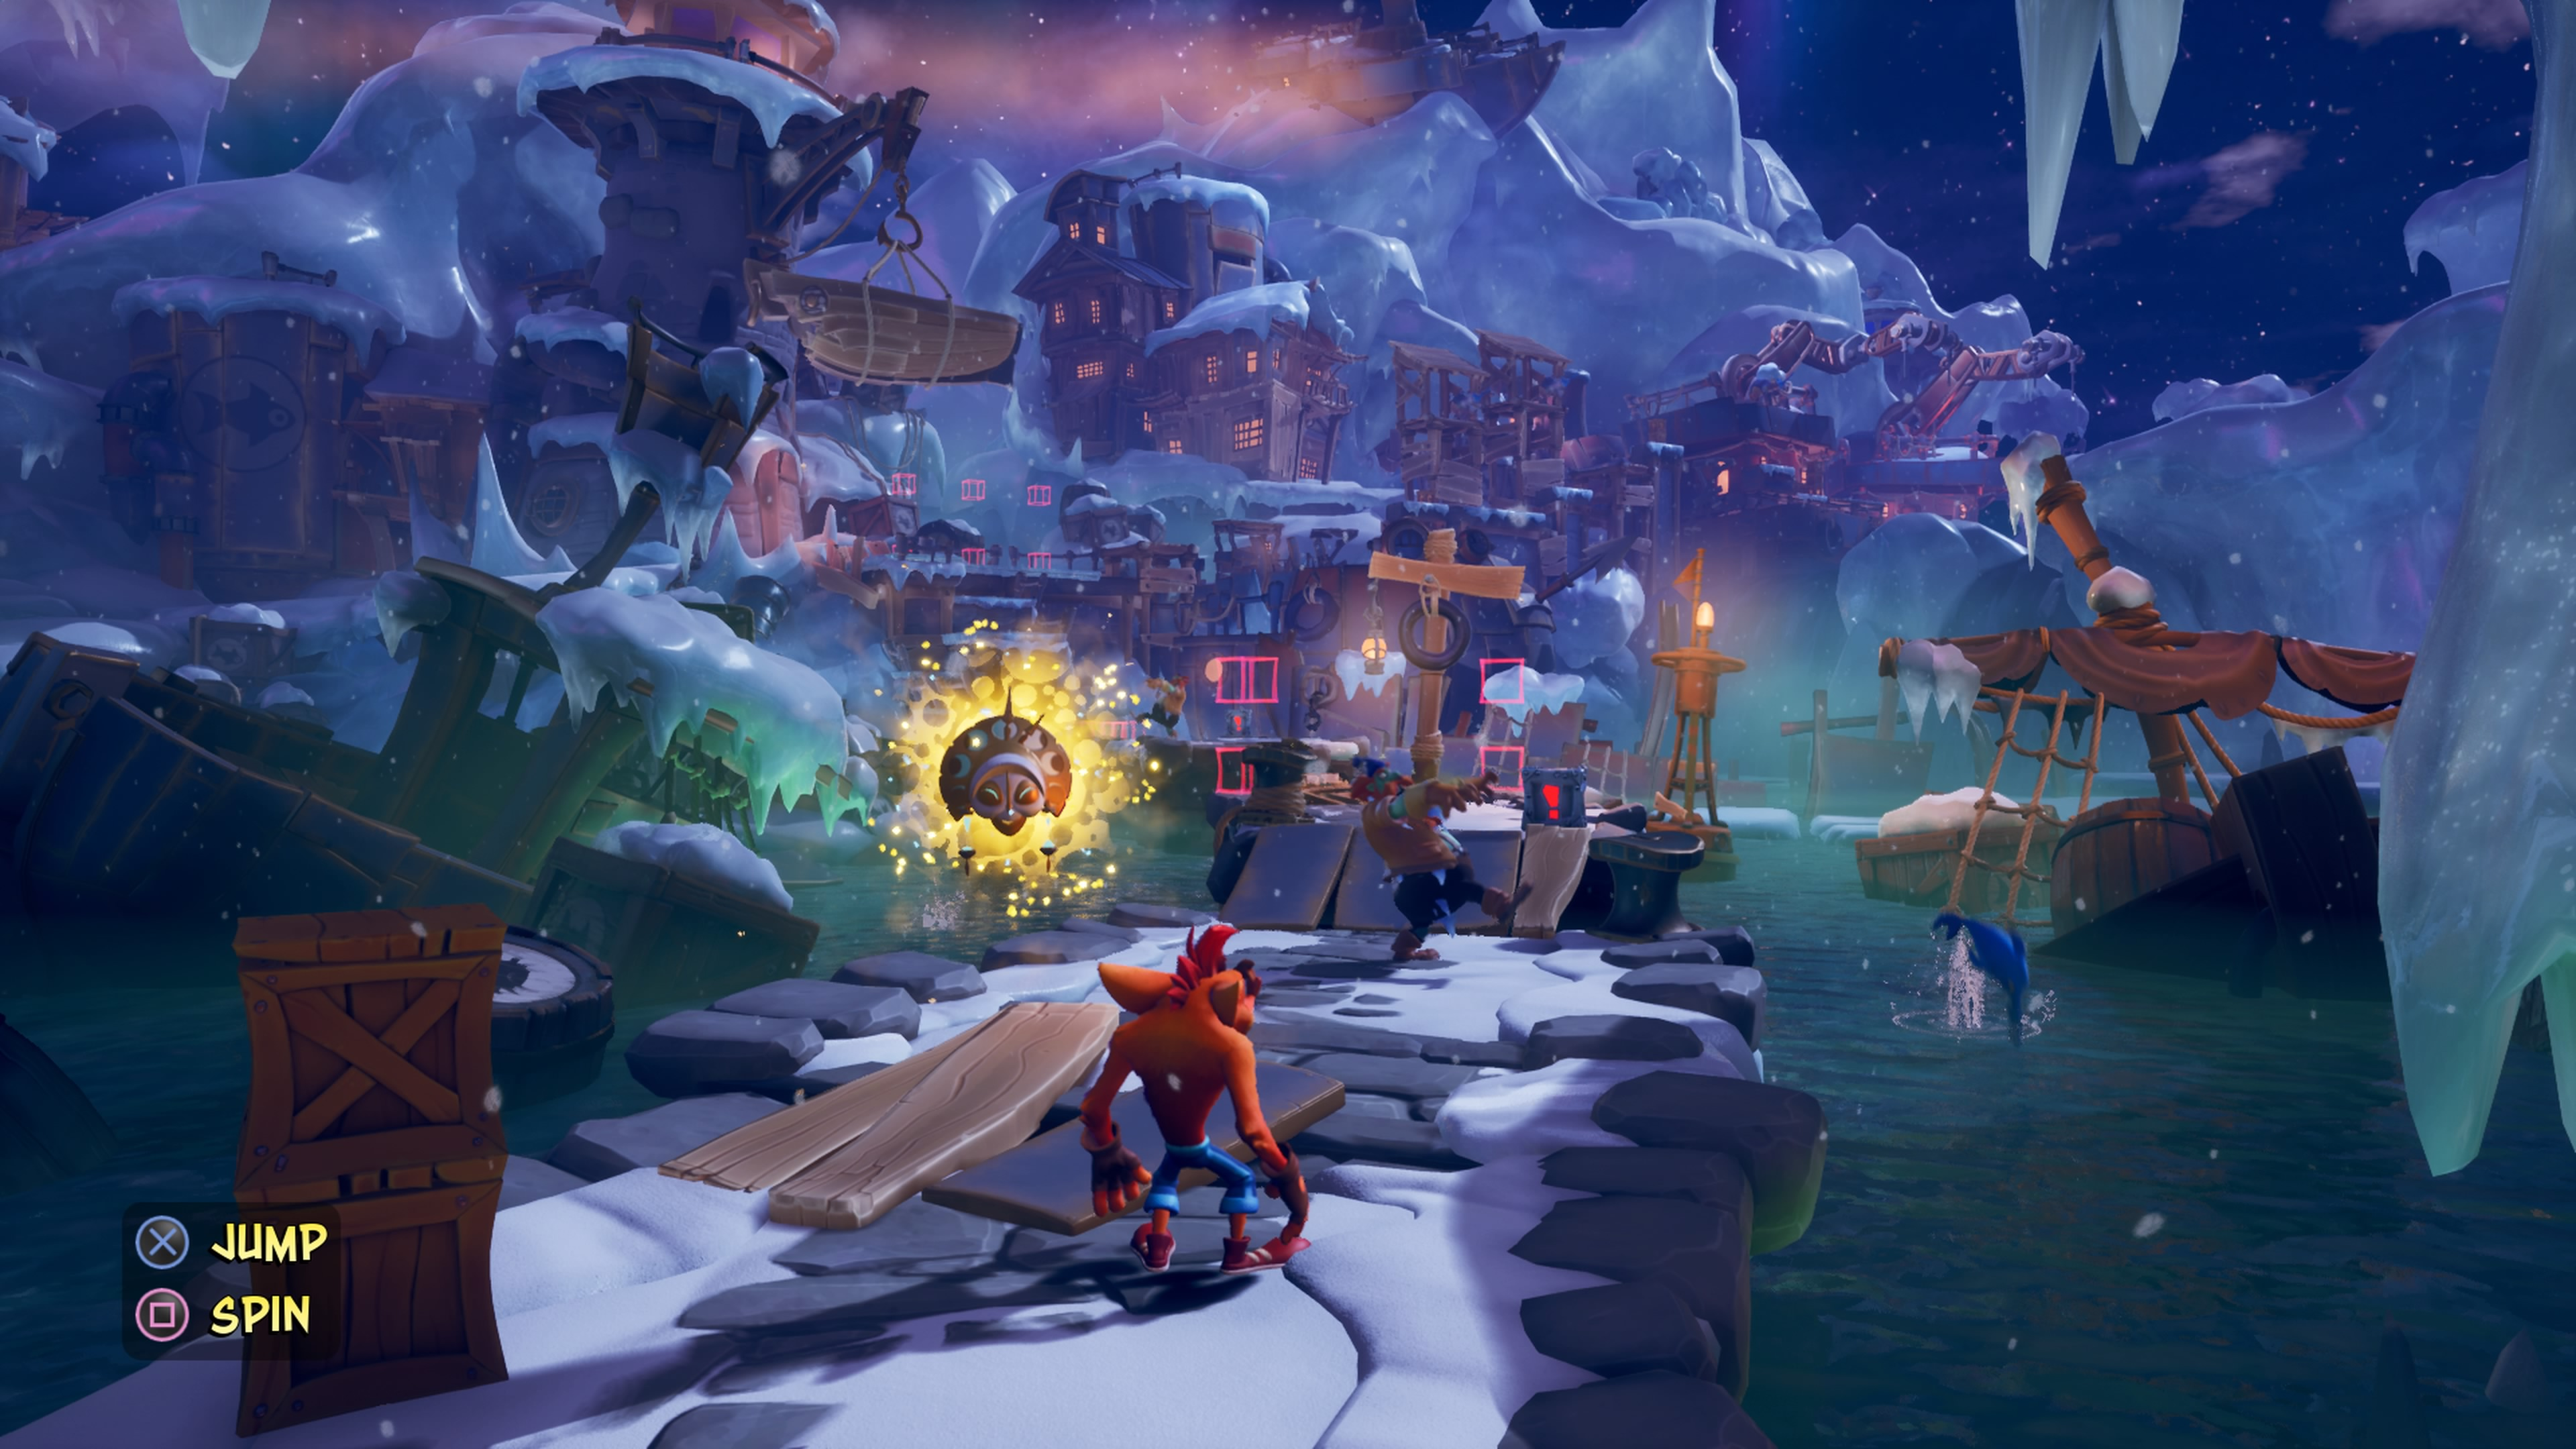 Crash Bandicoot 4: It's About Time hands-on -- Time to get excited |  VentureBeat